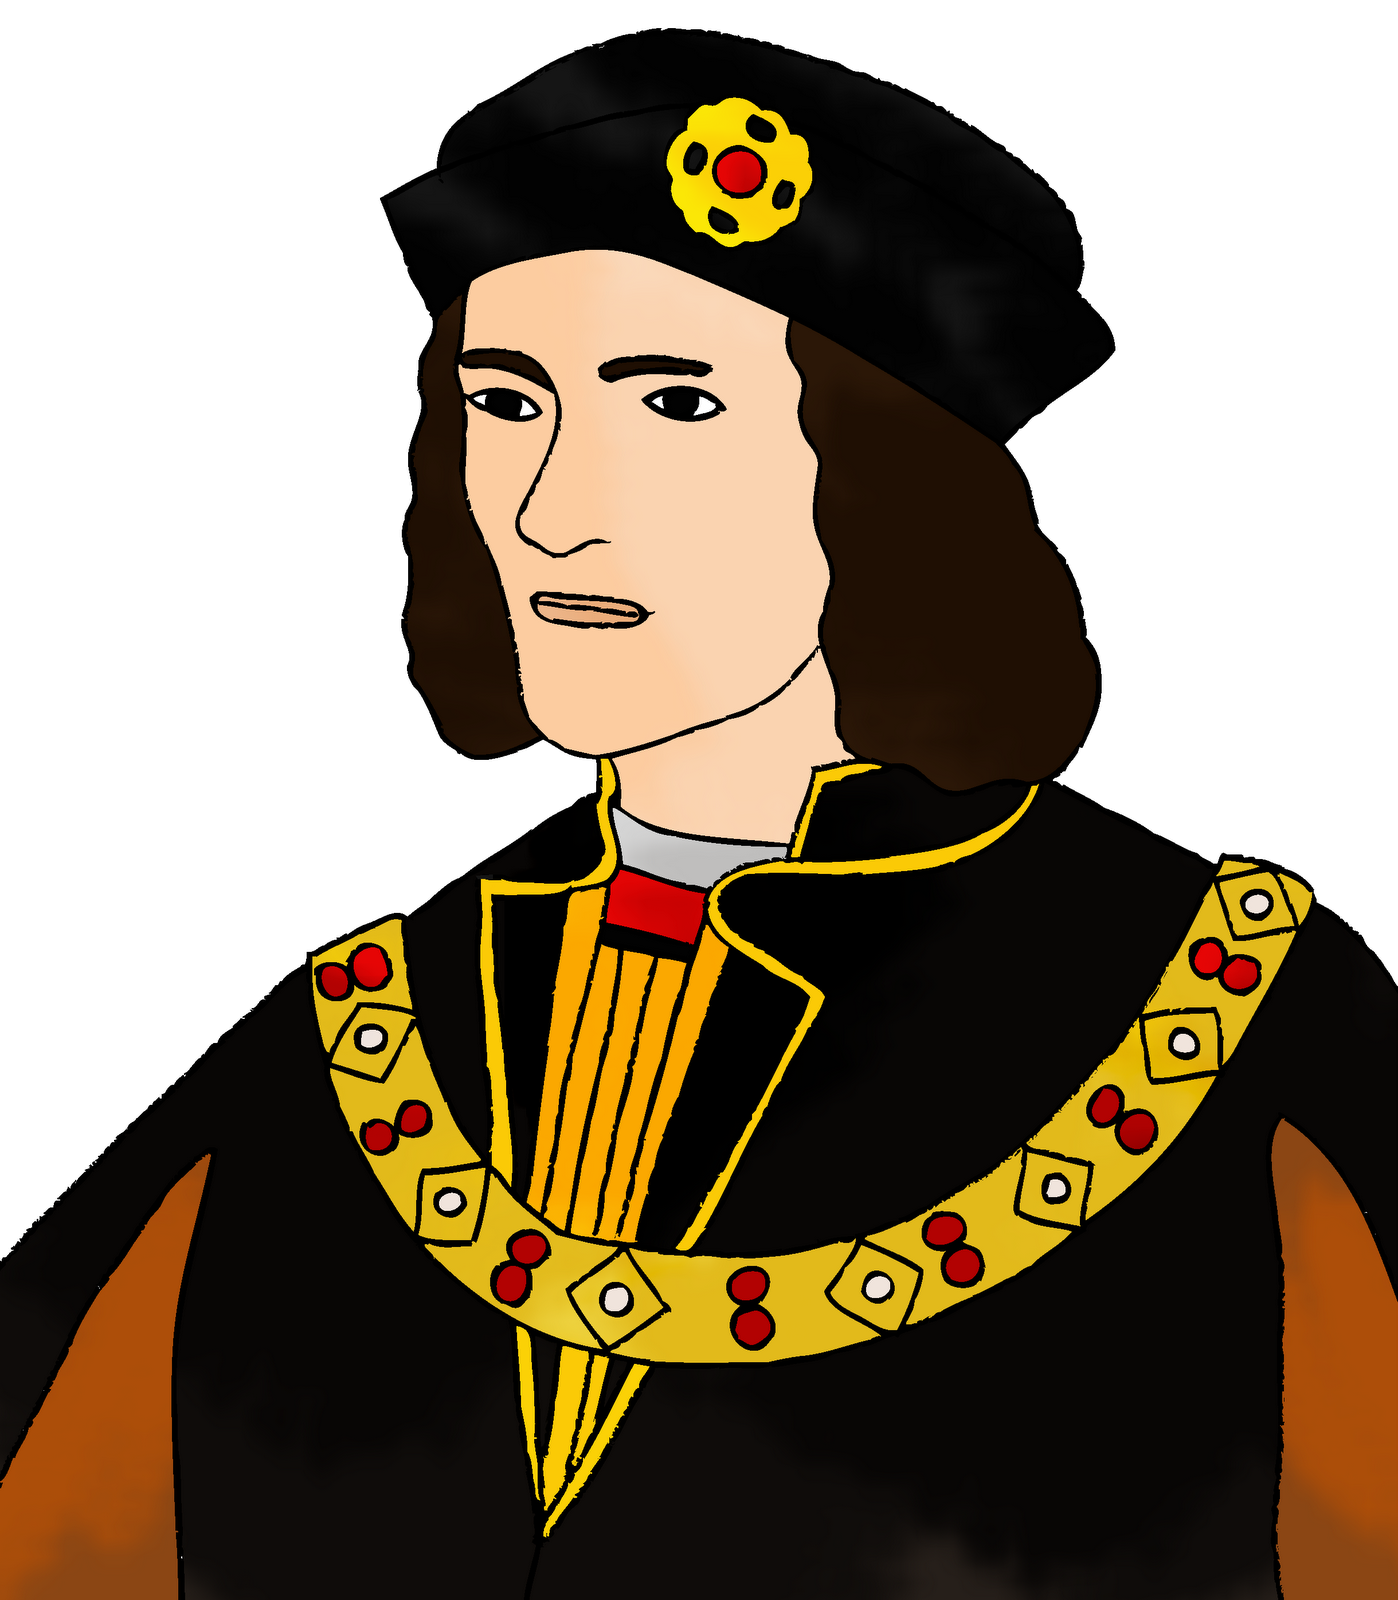 richard the third Richard iii - post reinterment in leicester cathedral 173 likes initially a campaign to bury richard iii with decorum now a commemorative page to.